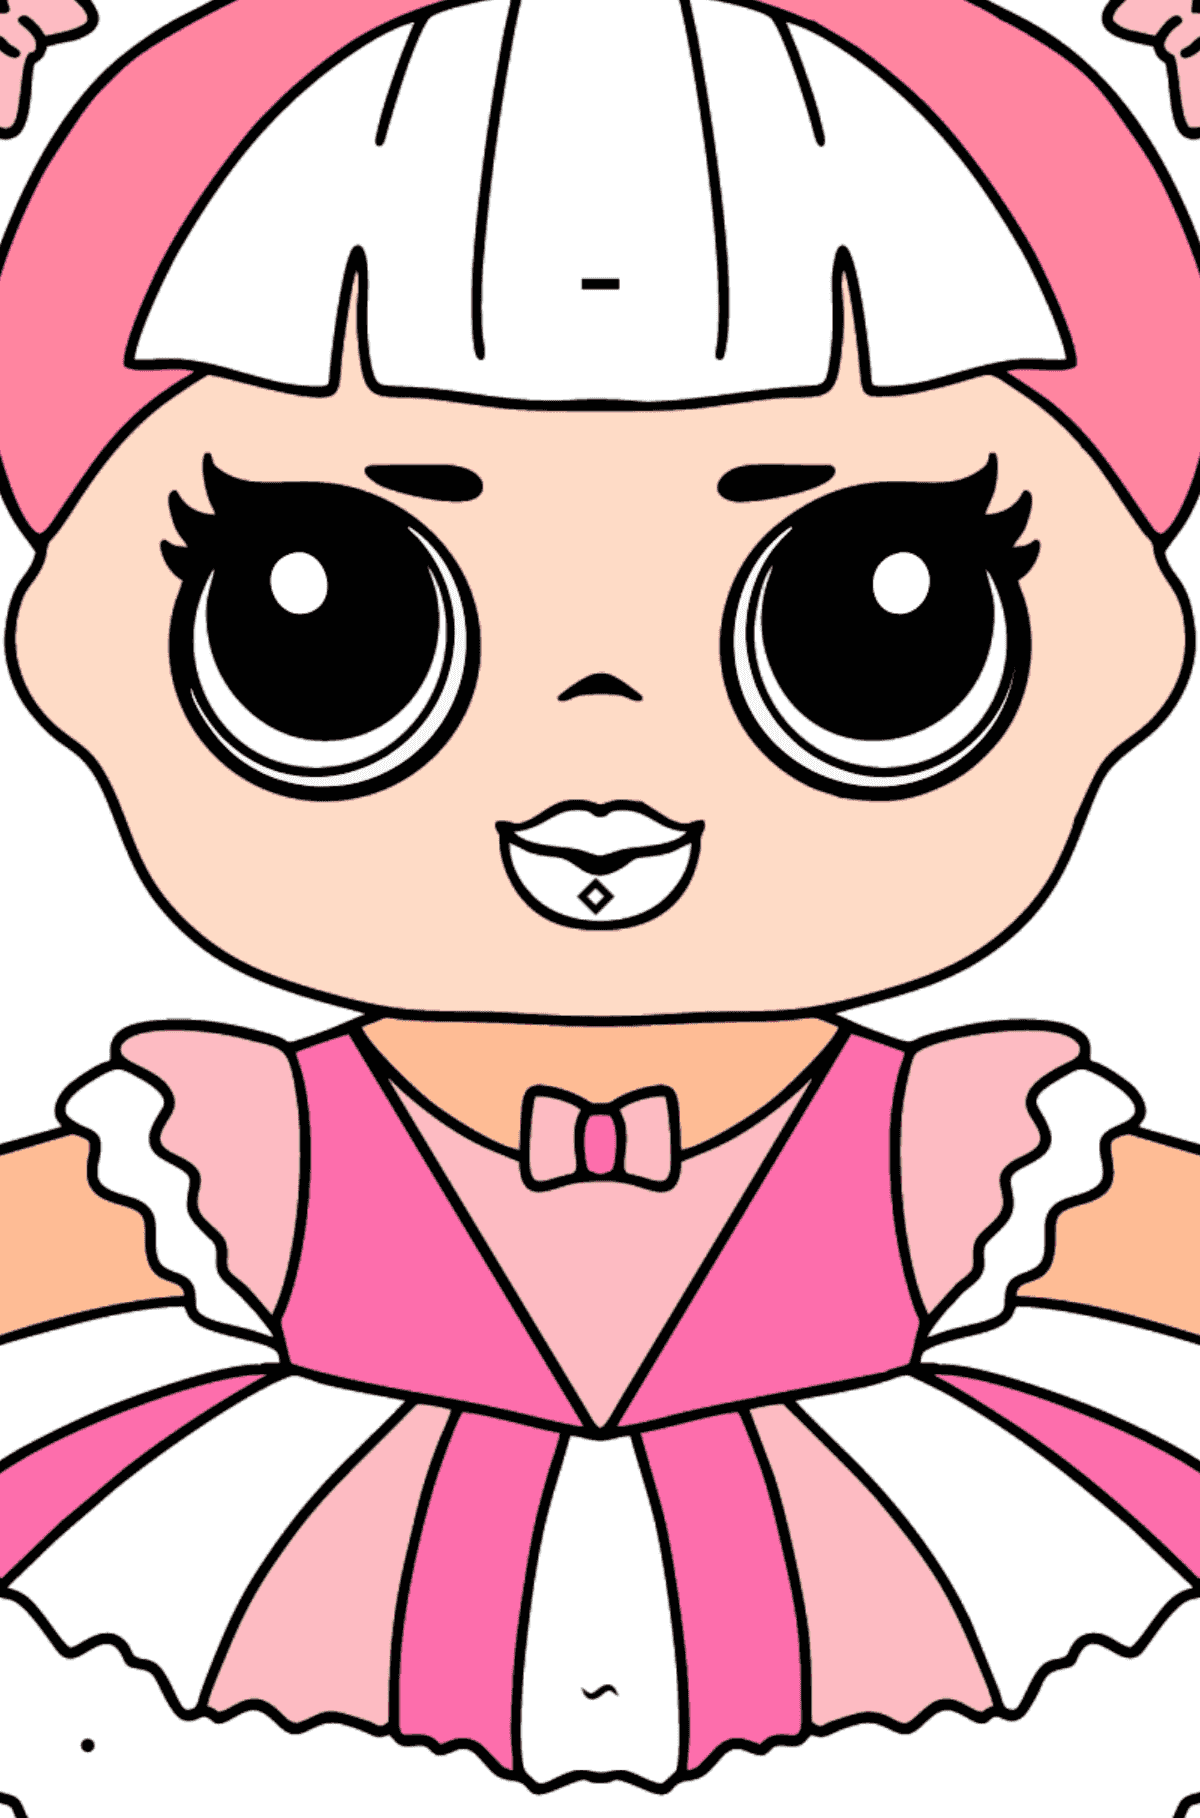 L.O.L. Surprise Doll Center Stage - Coloring by Symbols and Geometric Shapes for Kids